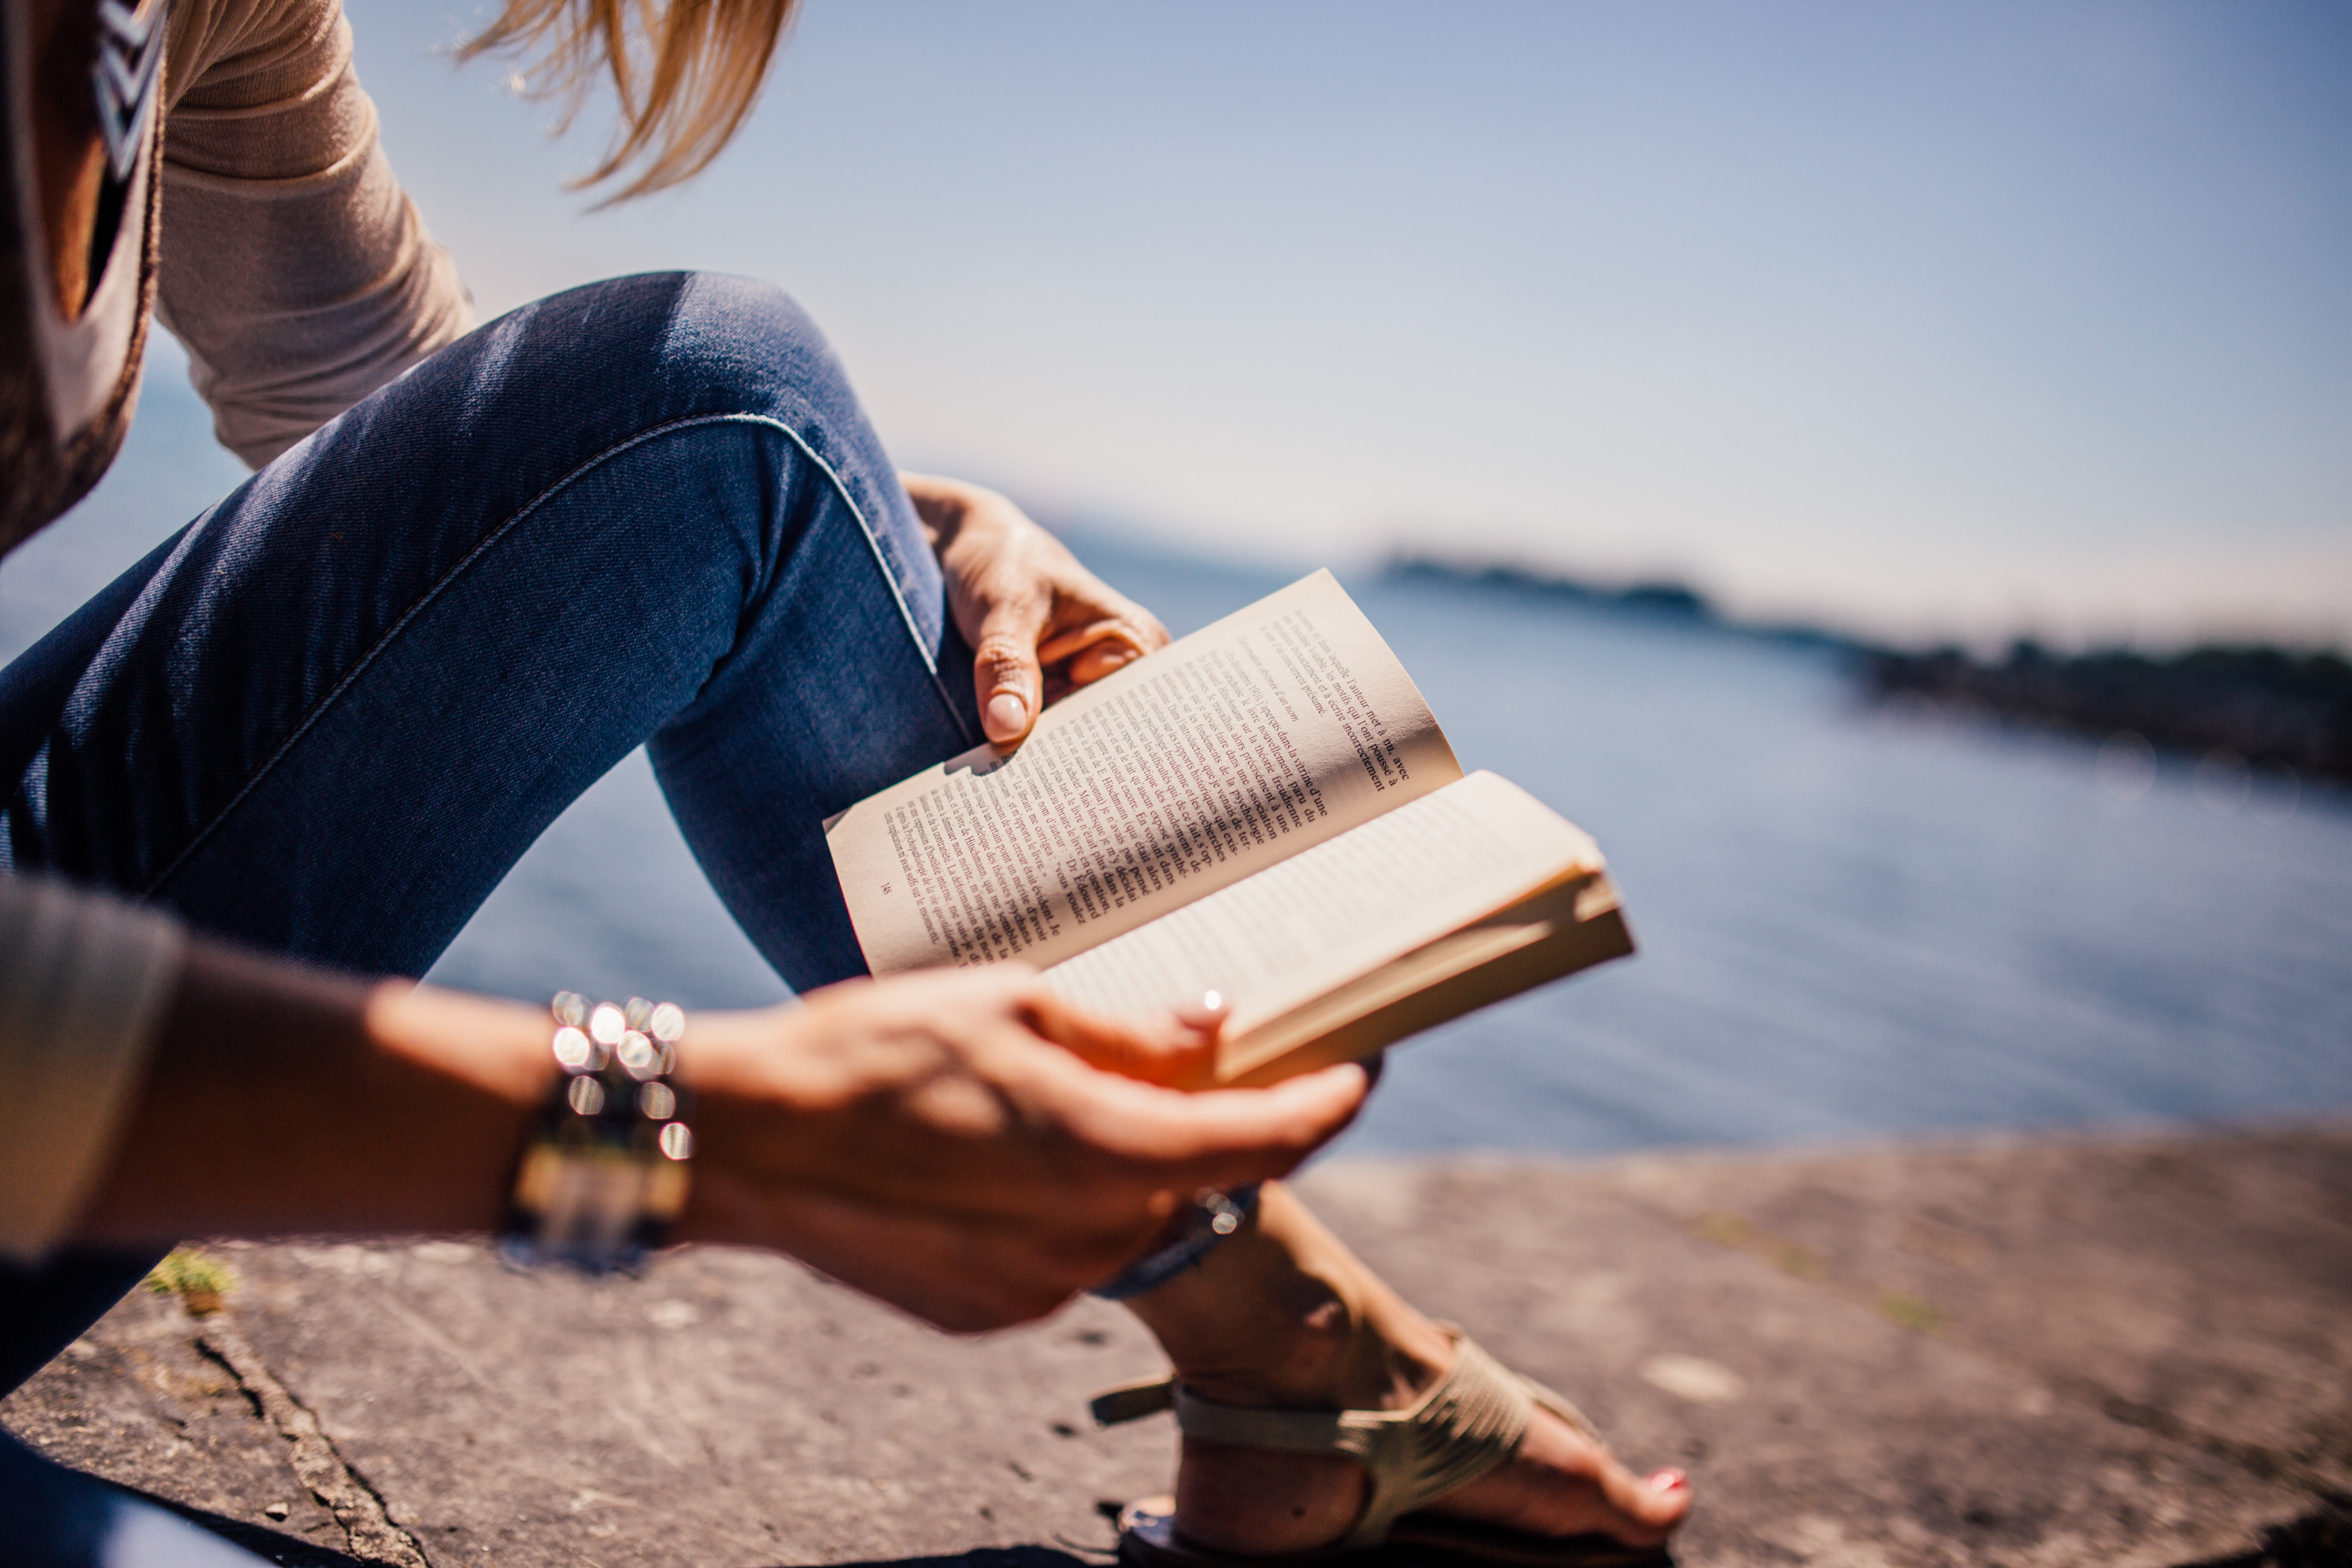 7 Inspiring Books You Need to Read This Year